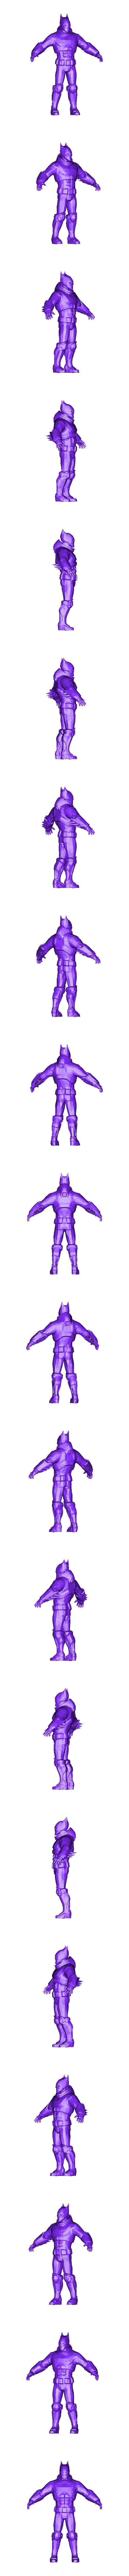 Batman vs Superman Suit.stl Download free STL file Batman vs Superman Suit • 3D printable design, detaildesigner